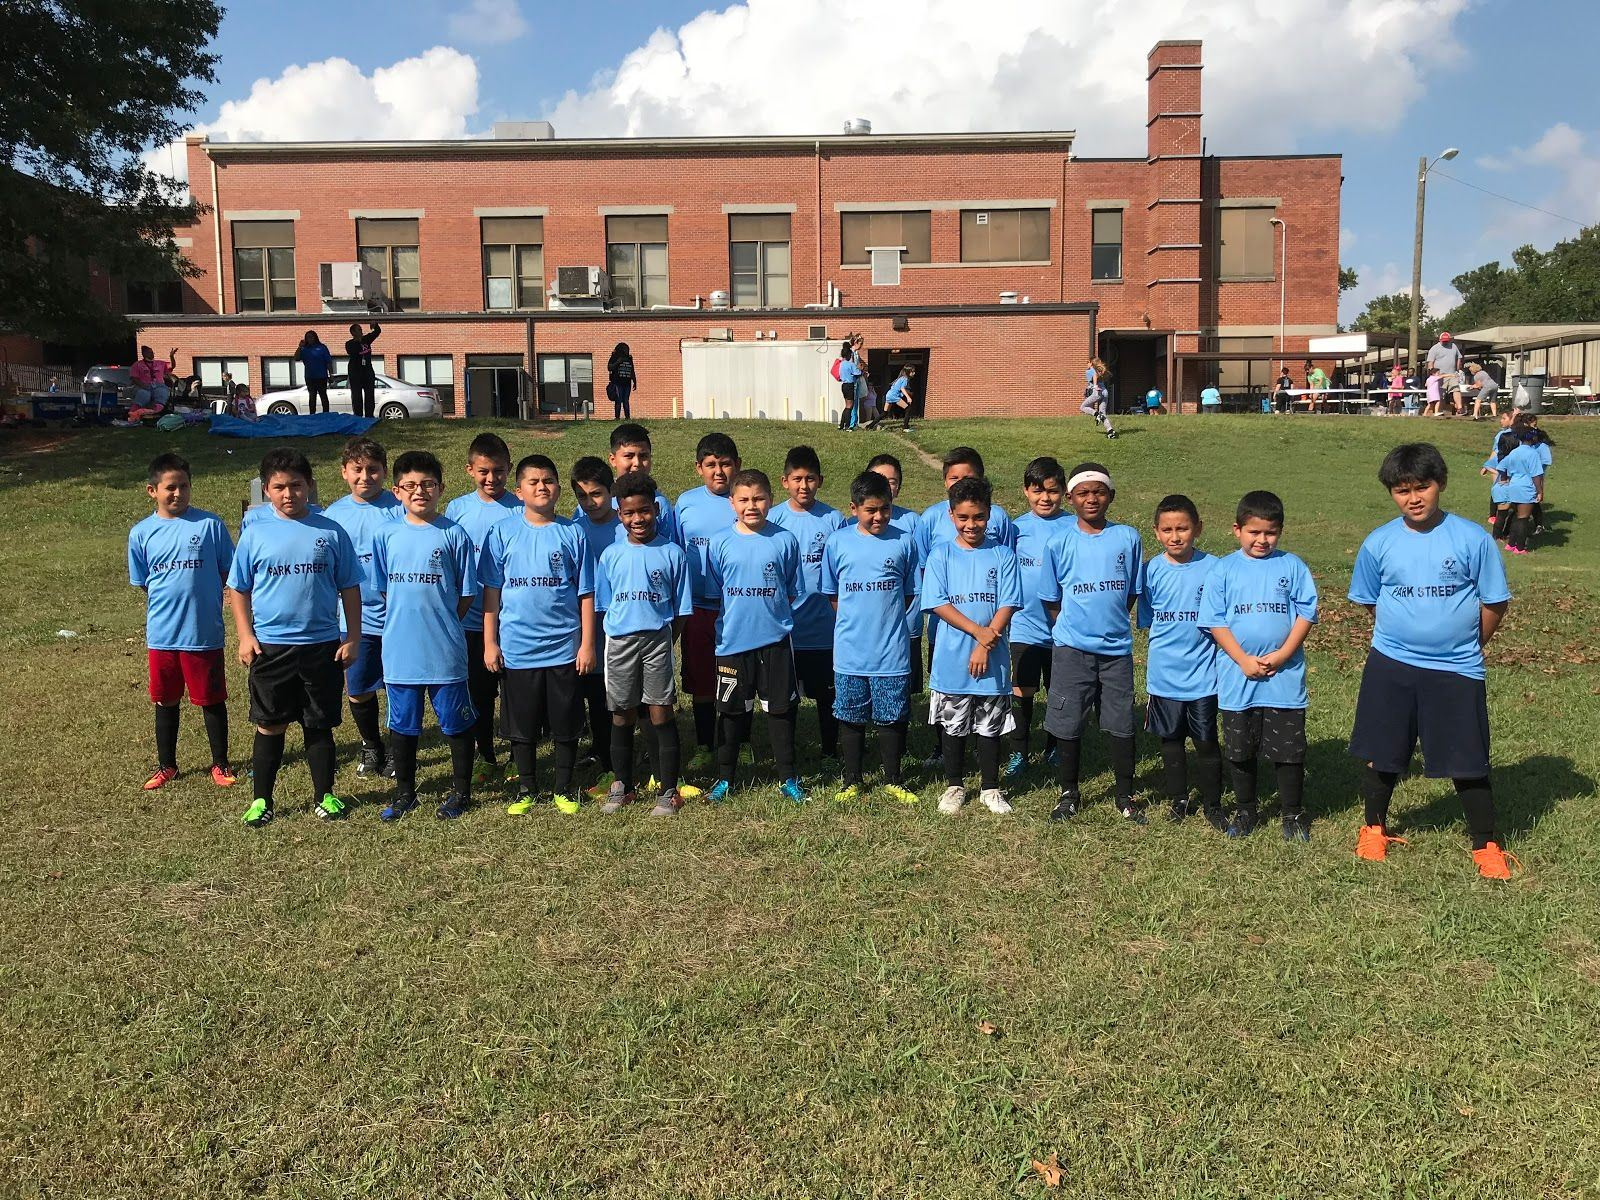 Marietta's​ ​Park​ ​Street​ ​Elementary​ ​Partners​ ​with​ ​Atlanta​ ​United​ ​and Stonebridge​ ​Church​ ​to​ ​Launch​ ​New​ ​Soccer​ ​Program